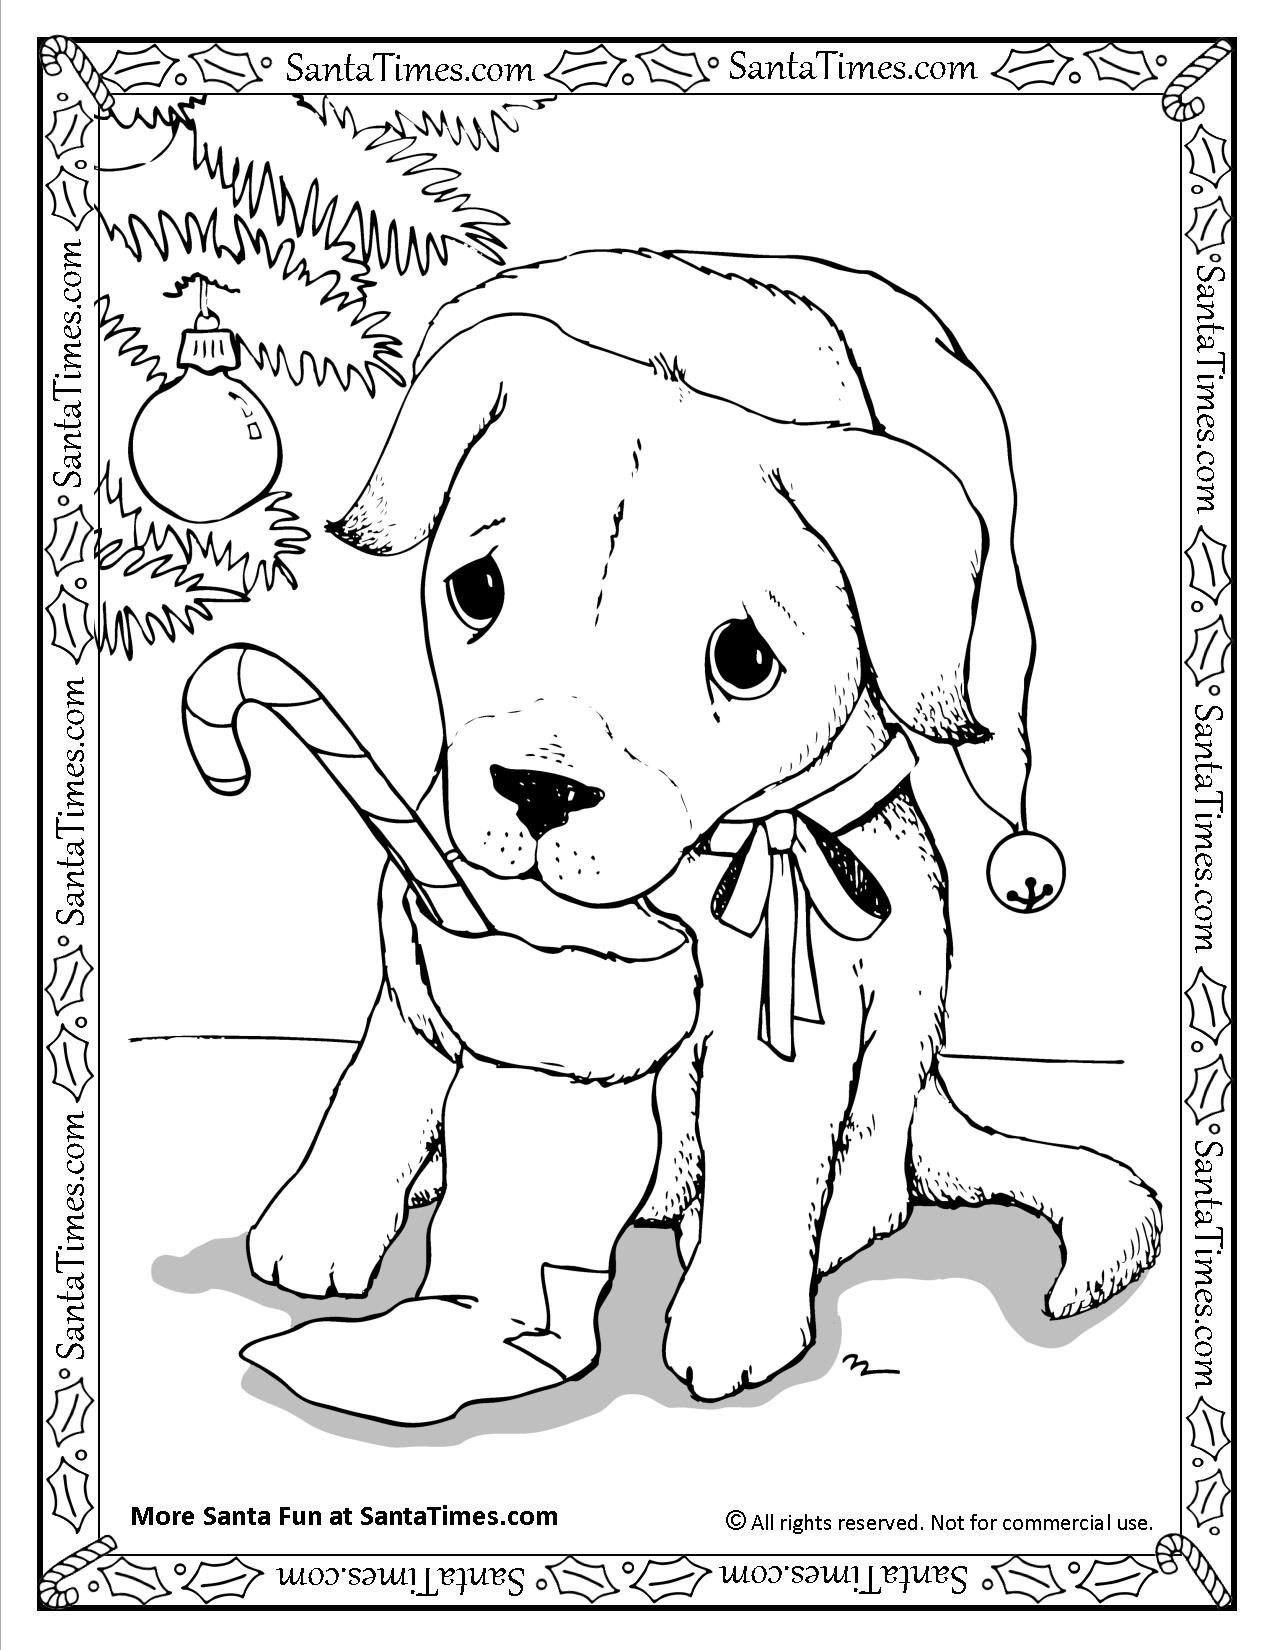 Santa Puppy Printable Christmas Coloring Page More Fun Activities And Coloring Pages At